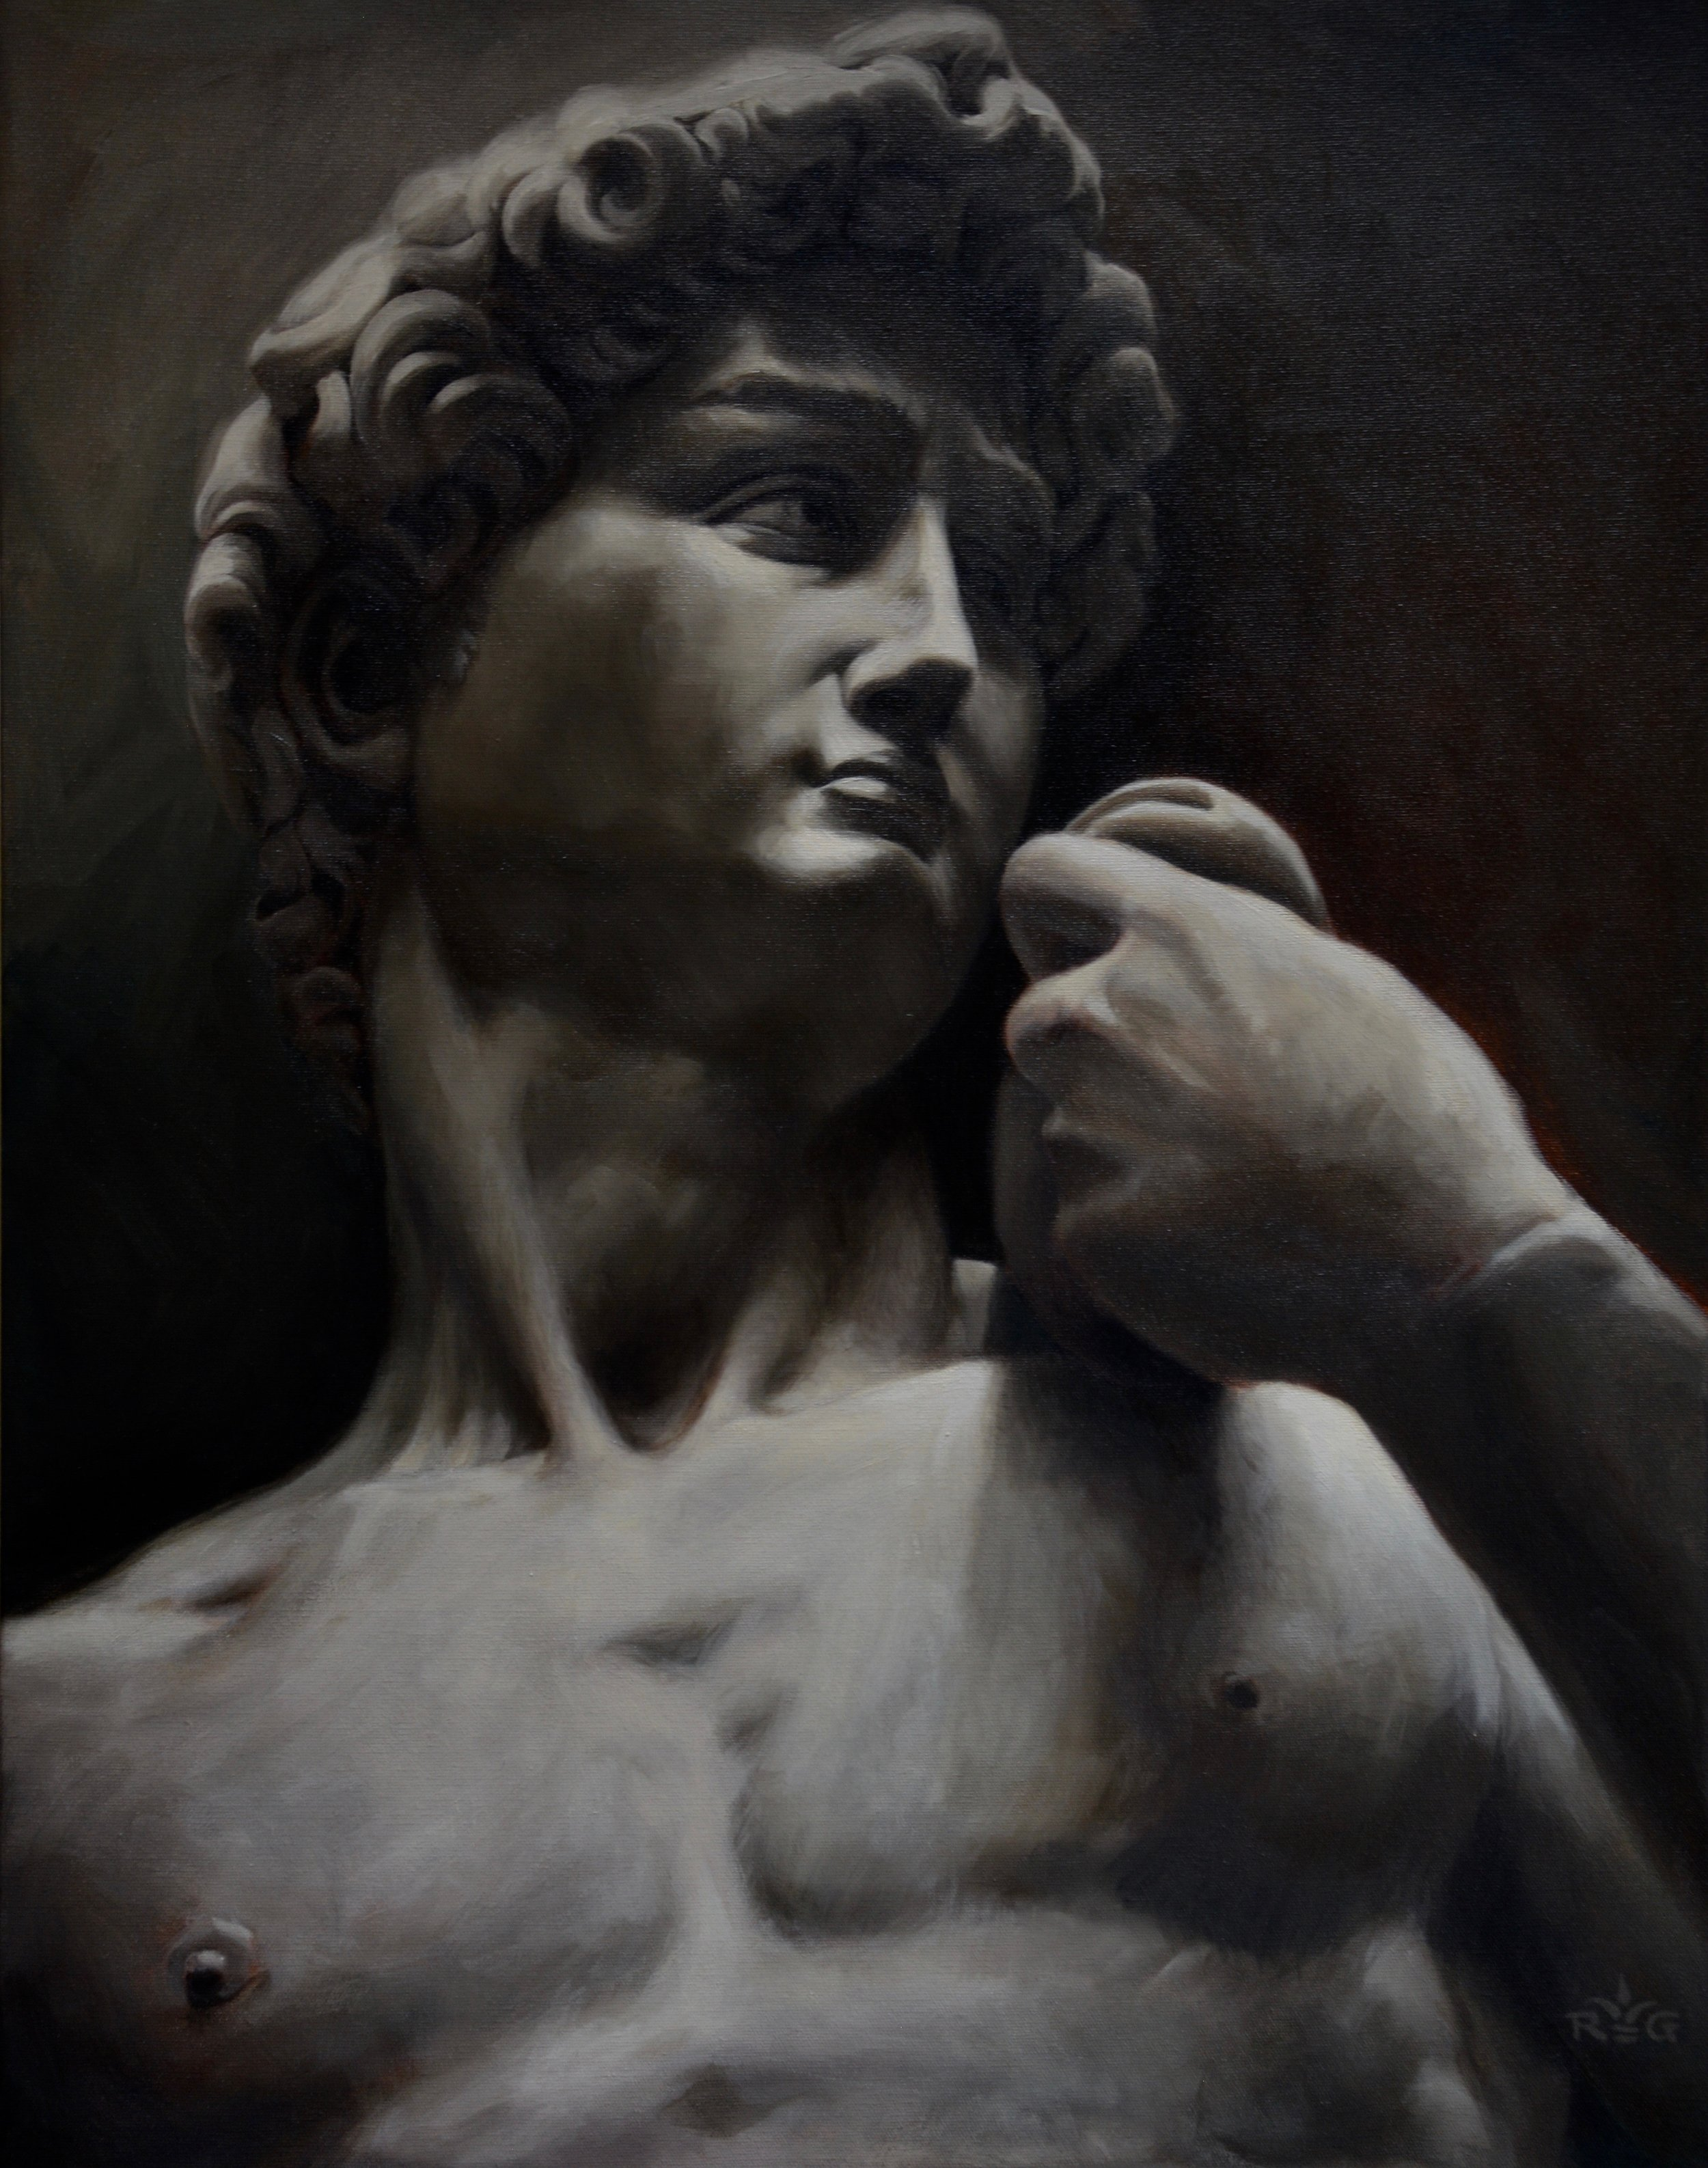 A Portrait of Michelangelo's David